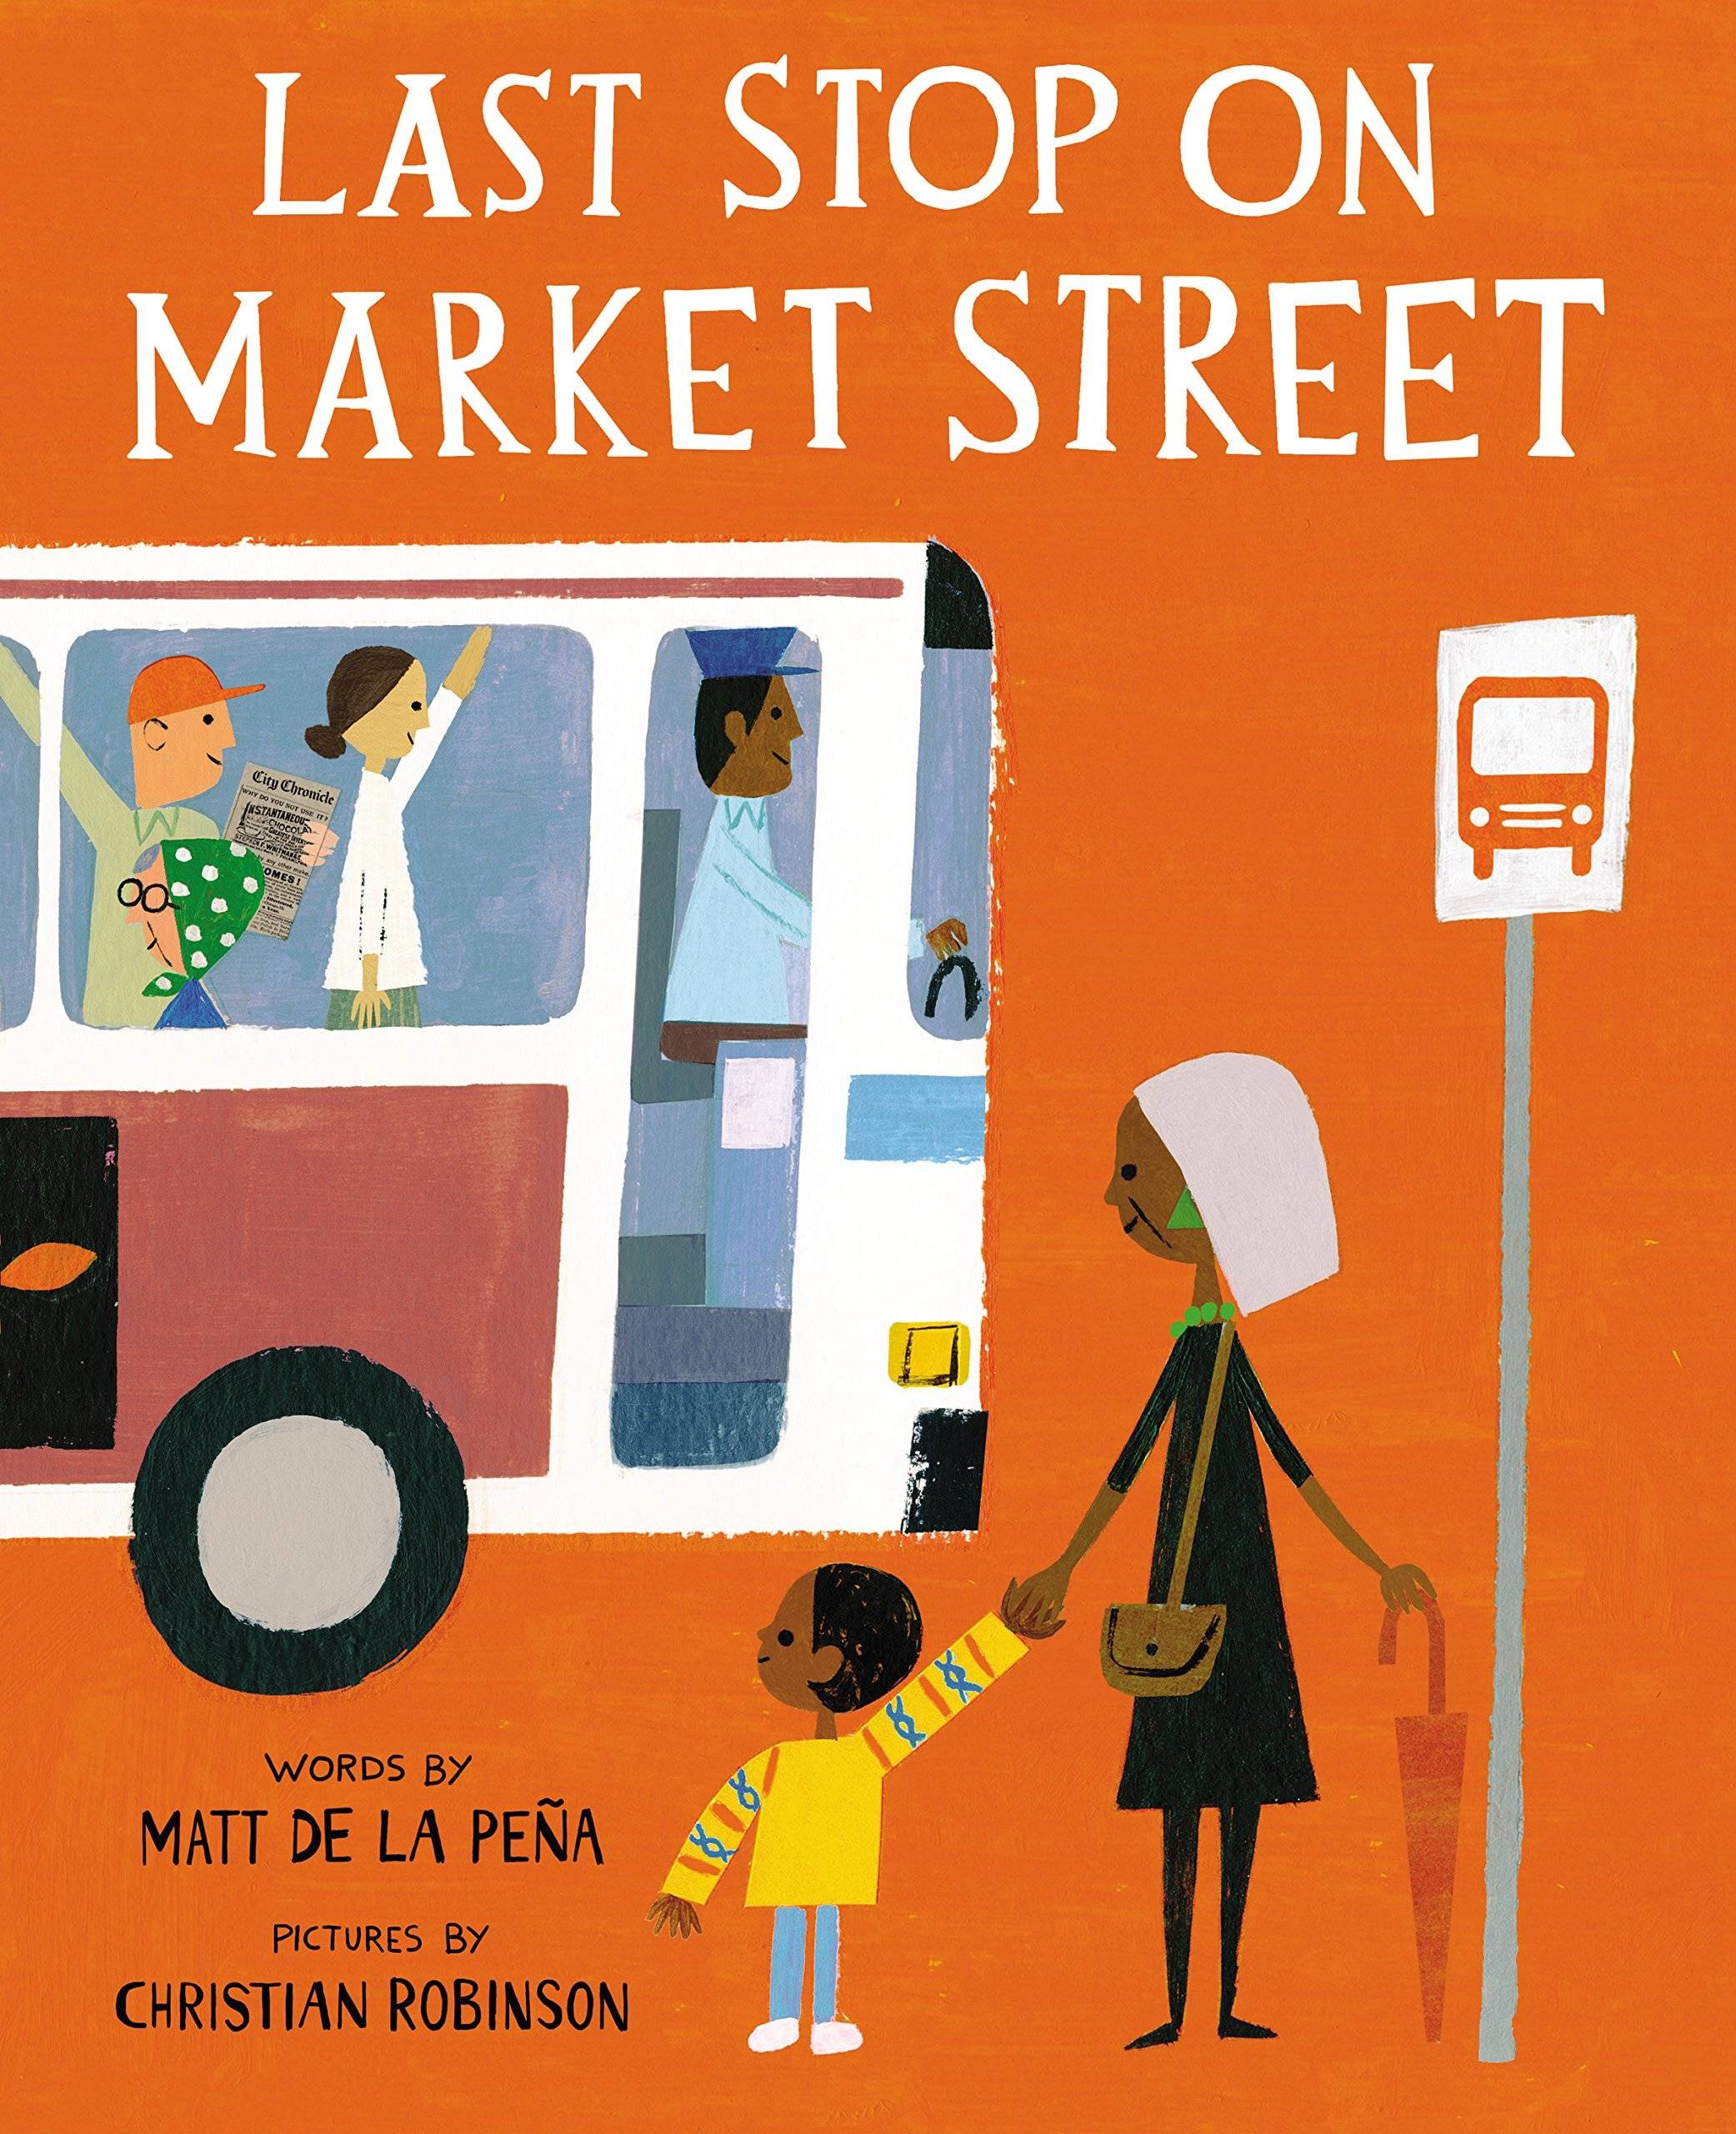 Last Stop On Market Street by Matt de la Pena